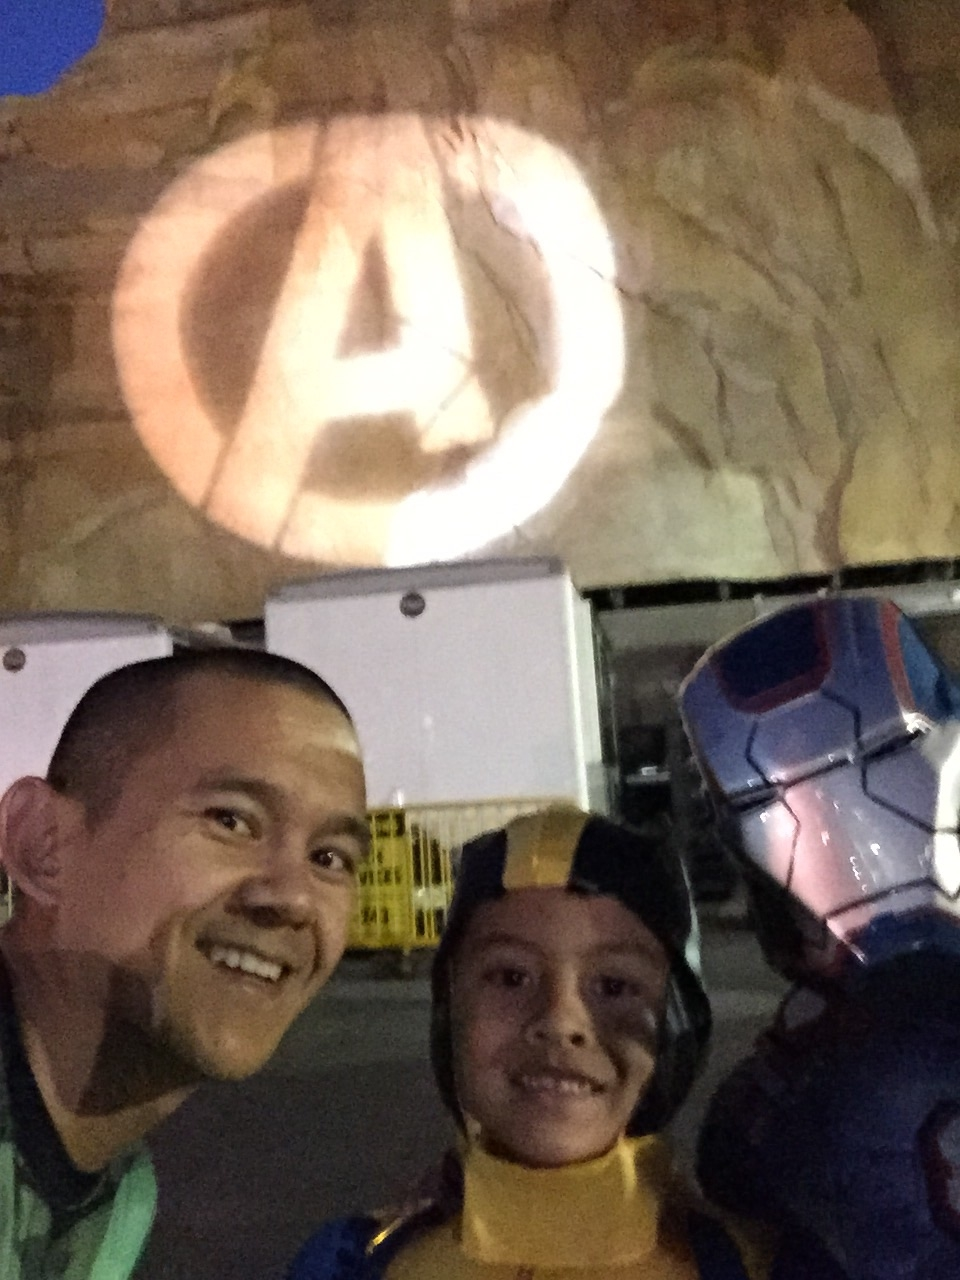 Excited to see the Avengers logo on the course